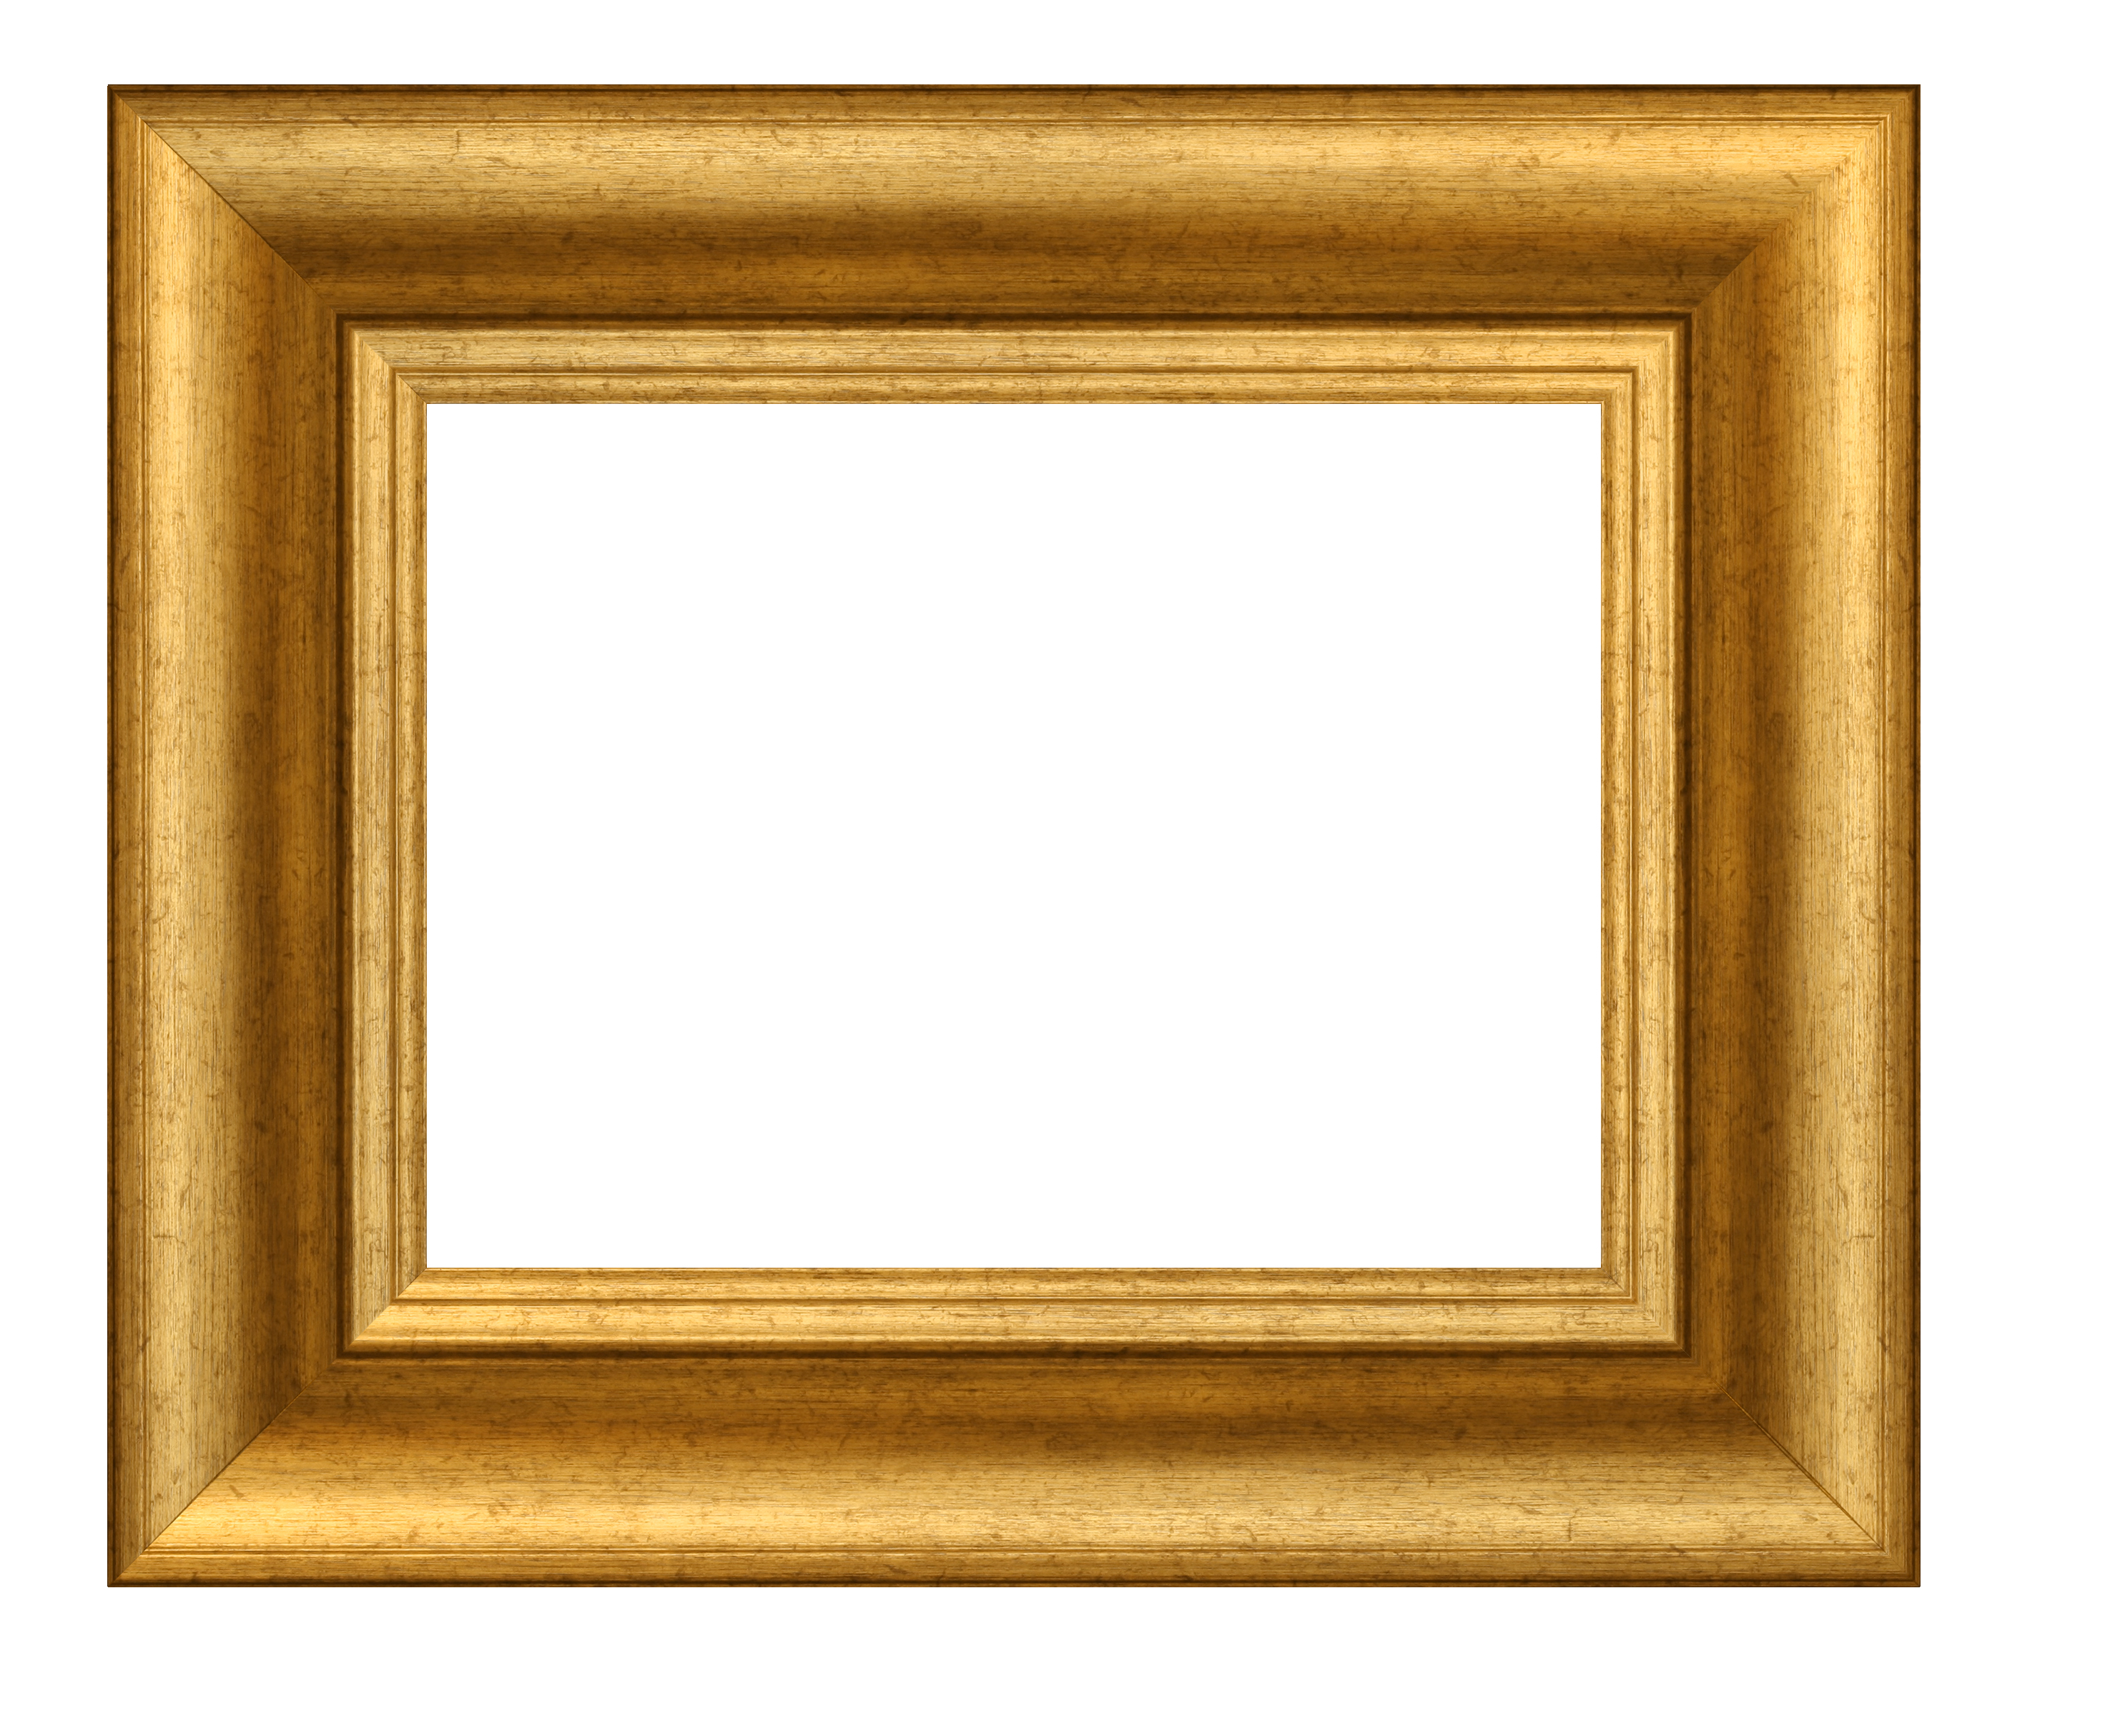 Gold plated wooden frame  Linda N. Edelstein, Ph.D.